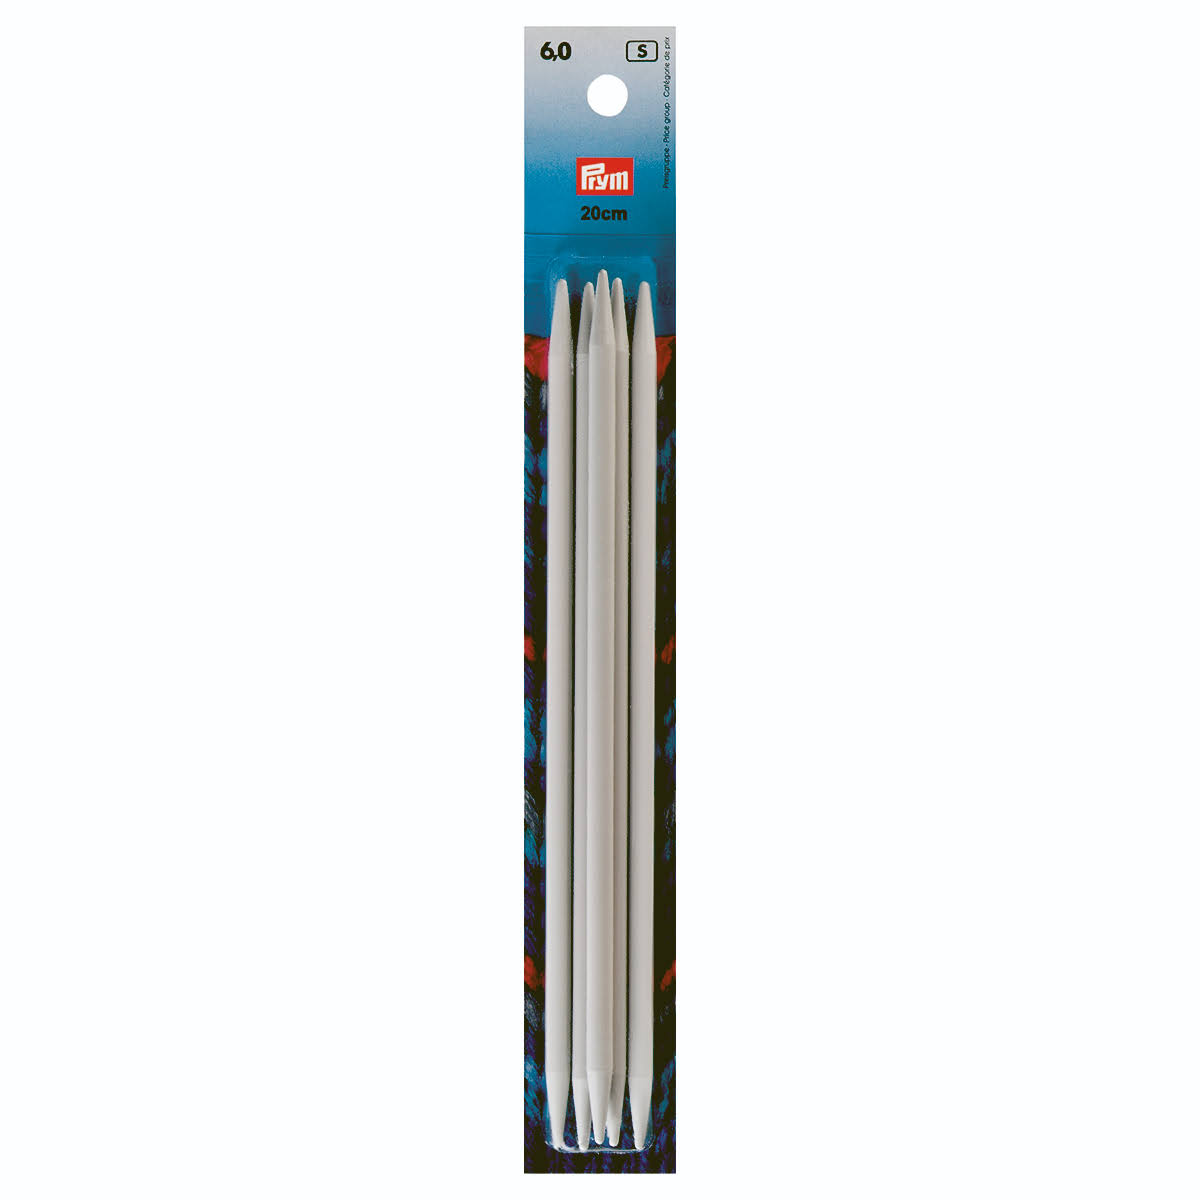 Prym Double Pointed Knitting Needles - Grey, 6mm x 20cm